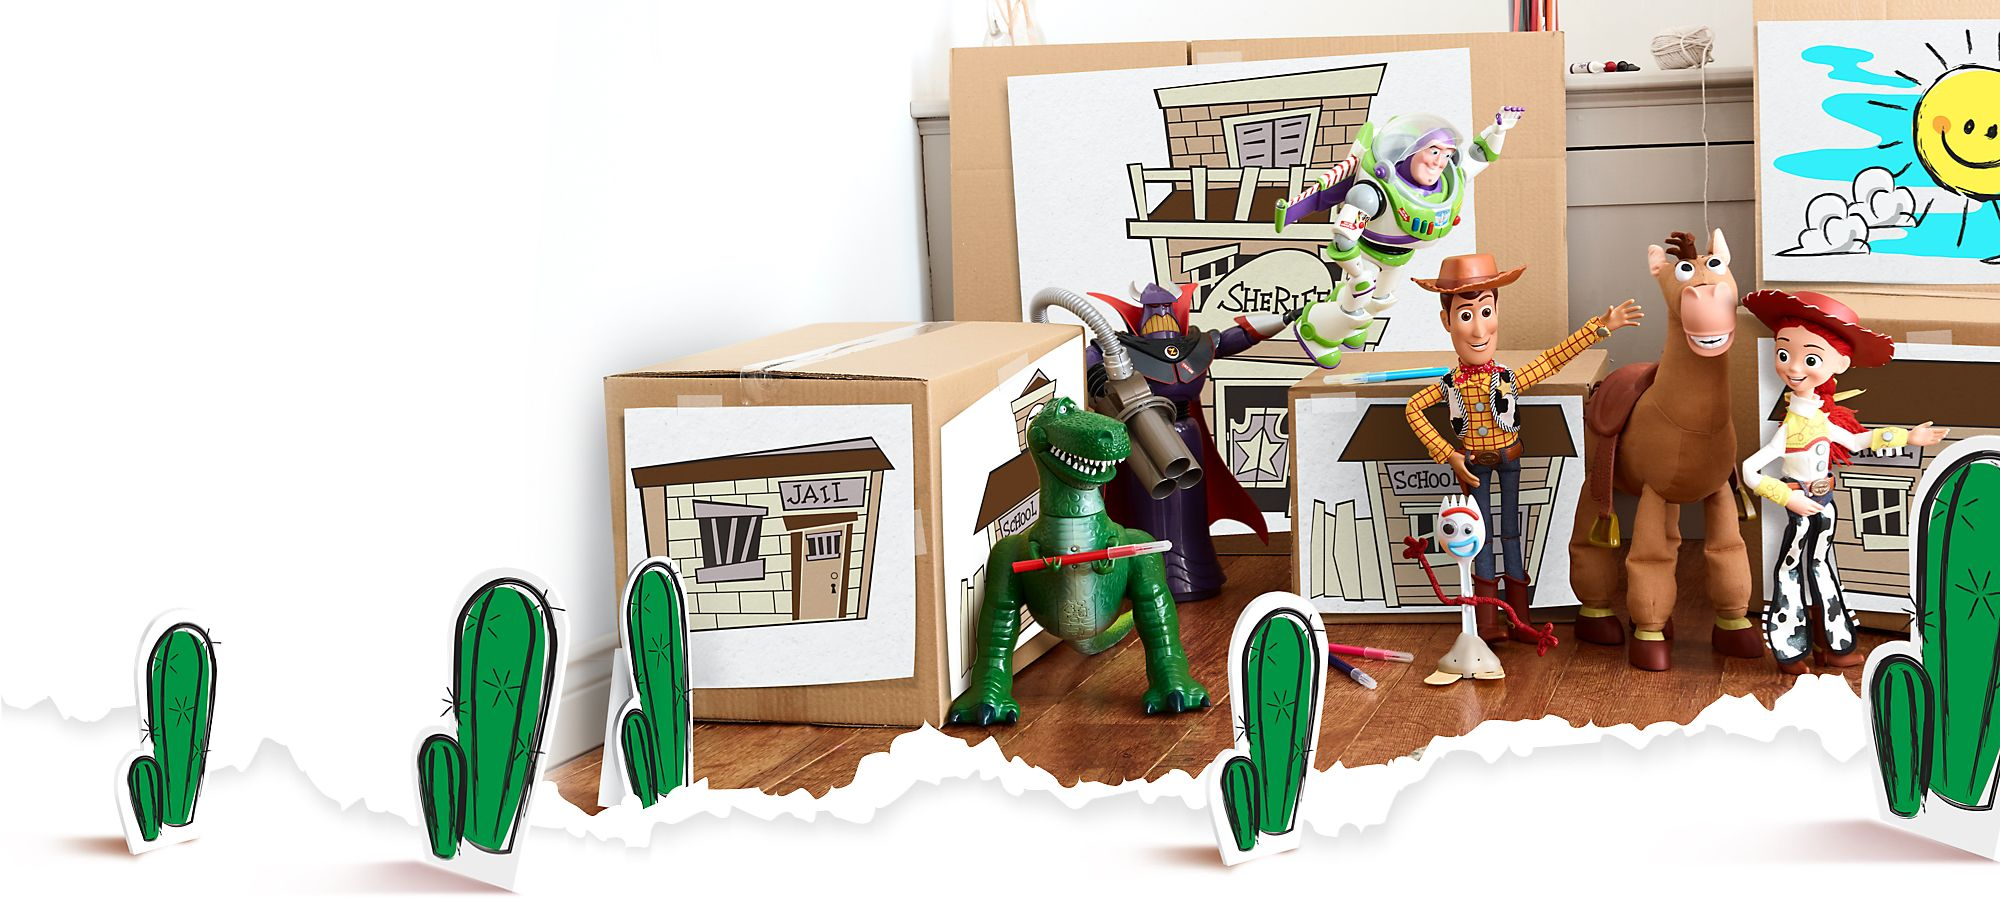 To Infinity and Beyond Join the adventure and explore our collection of toys, costumes and more